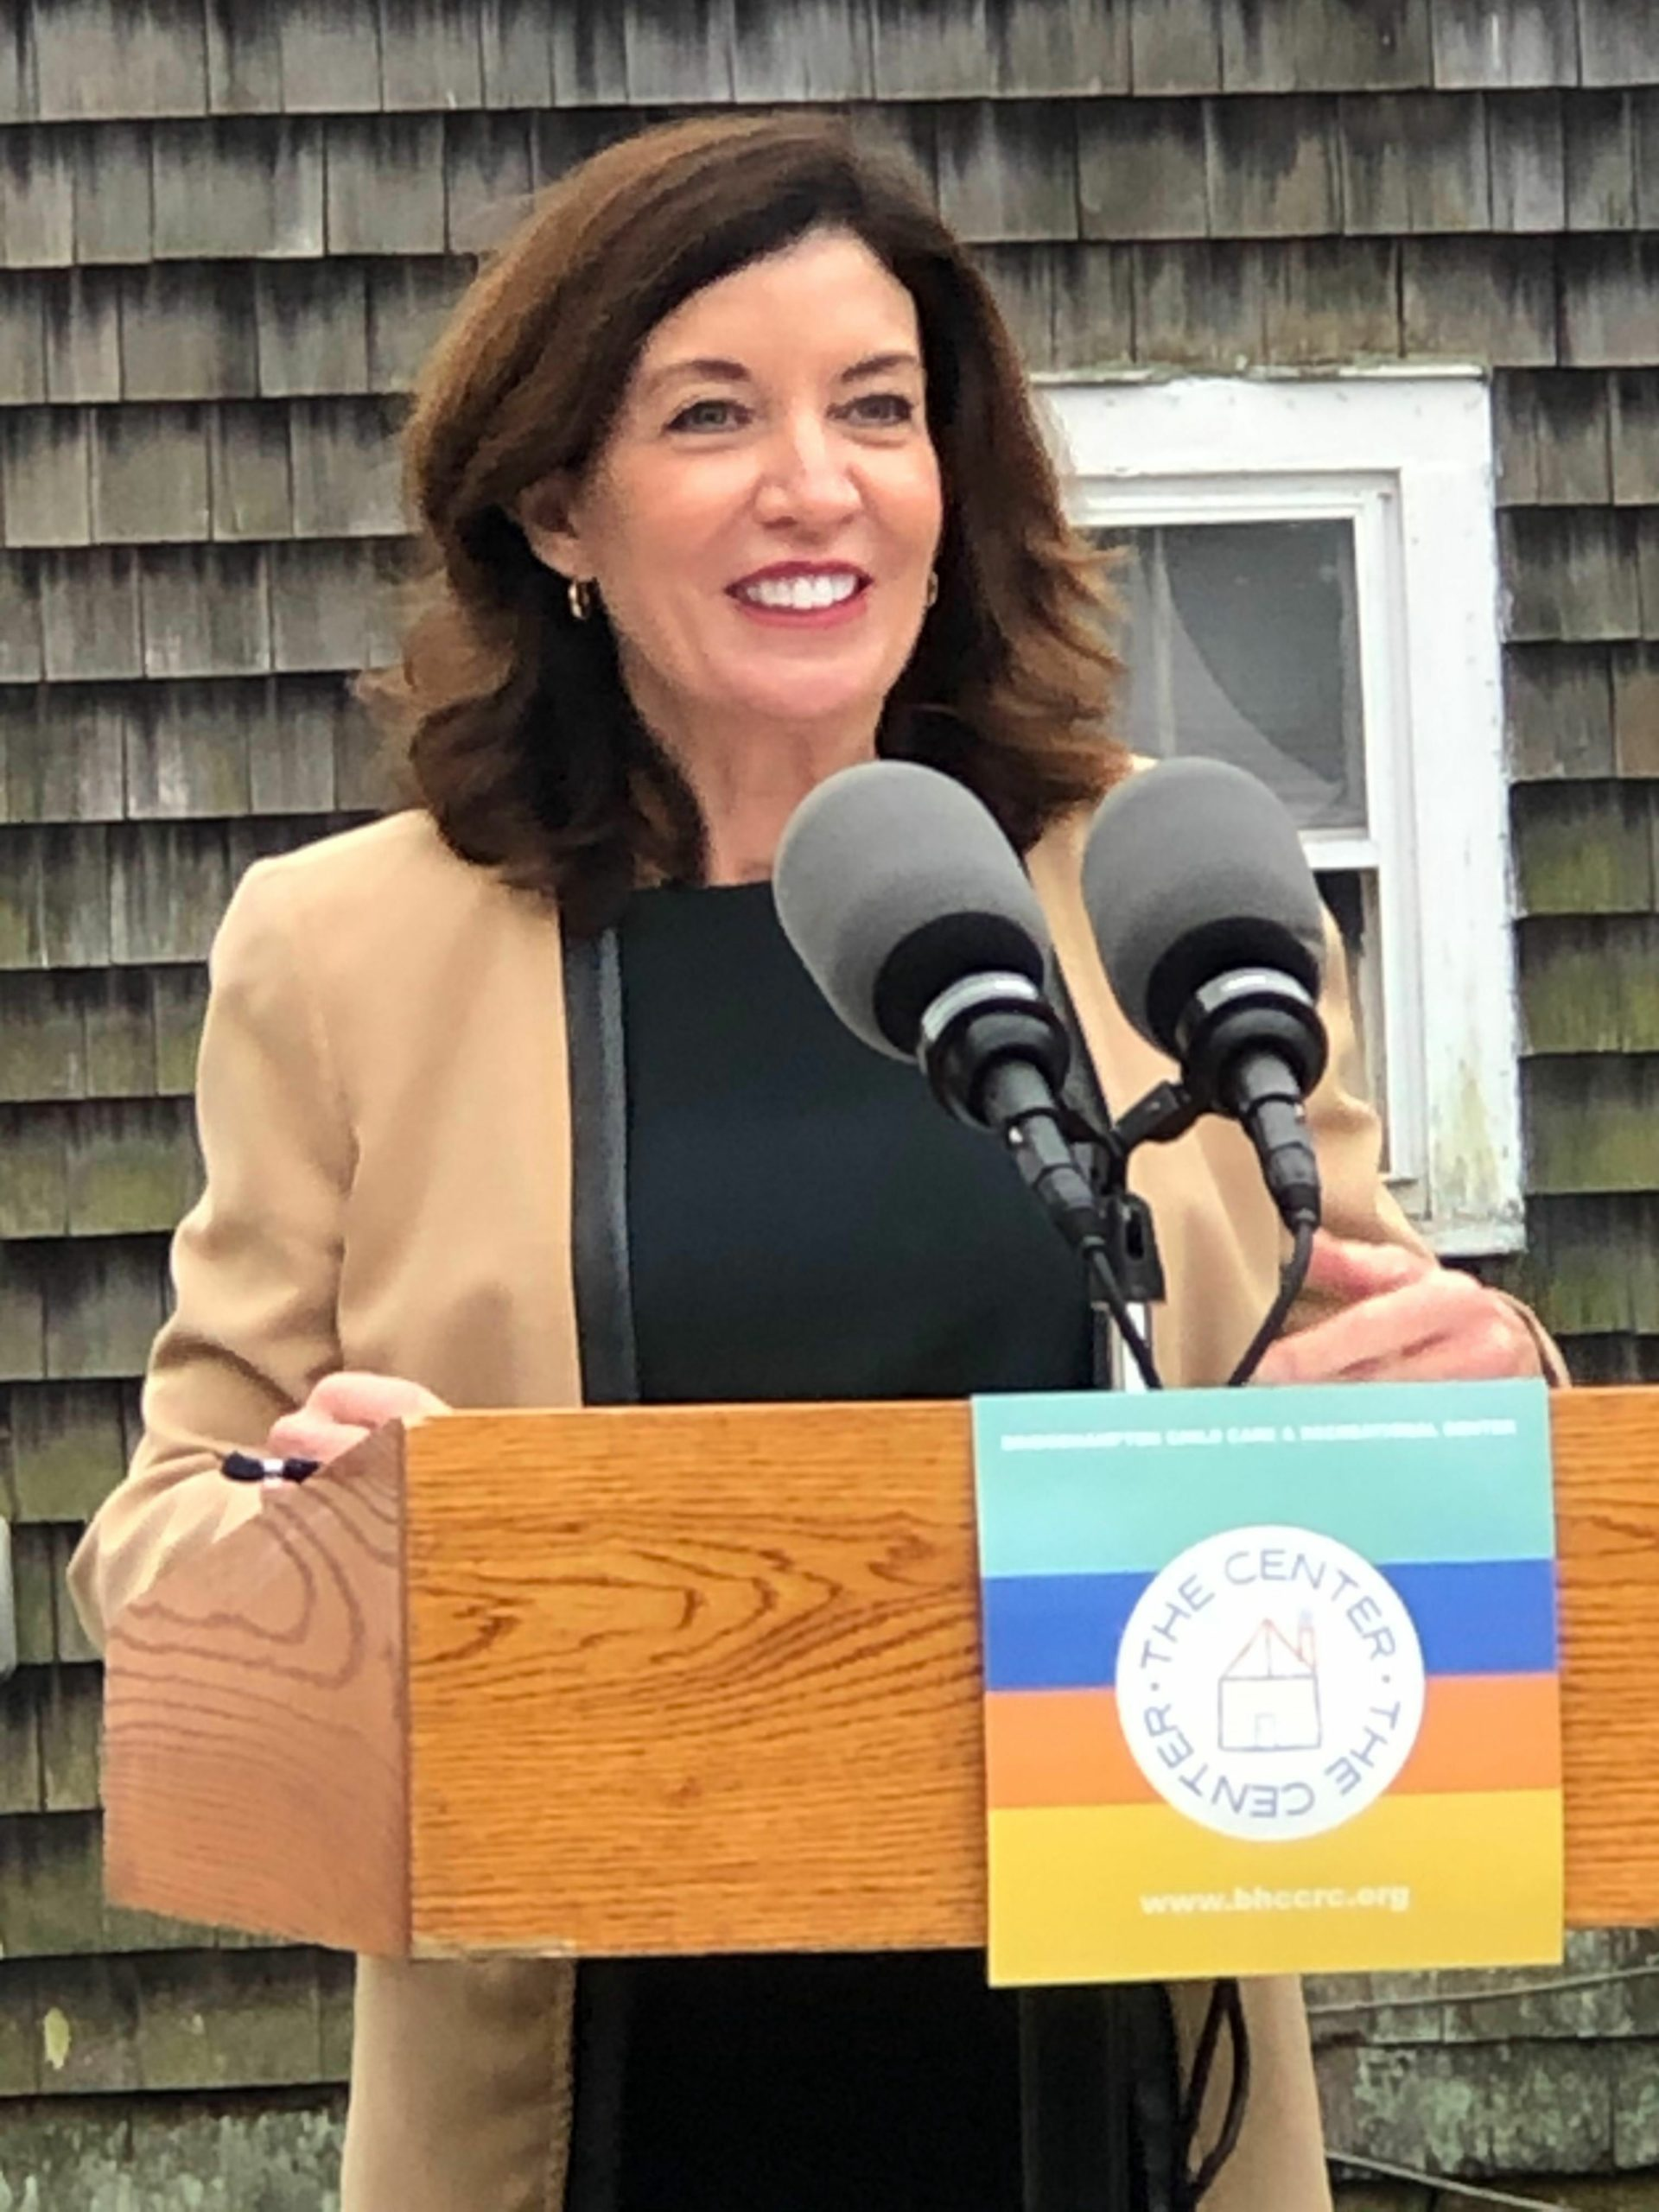 Lt. Governor Kathy Hochul at the Center's groundbreaking.